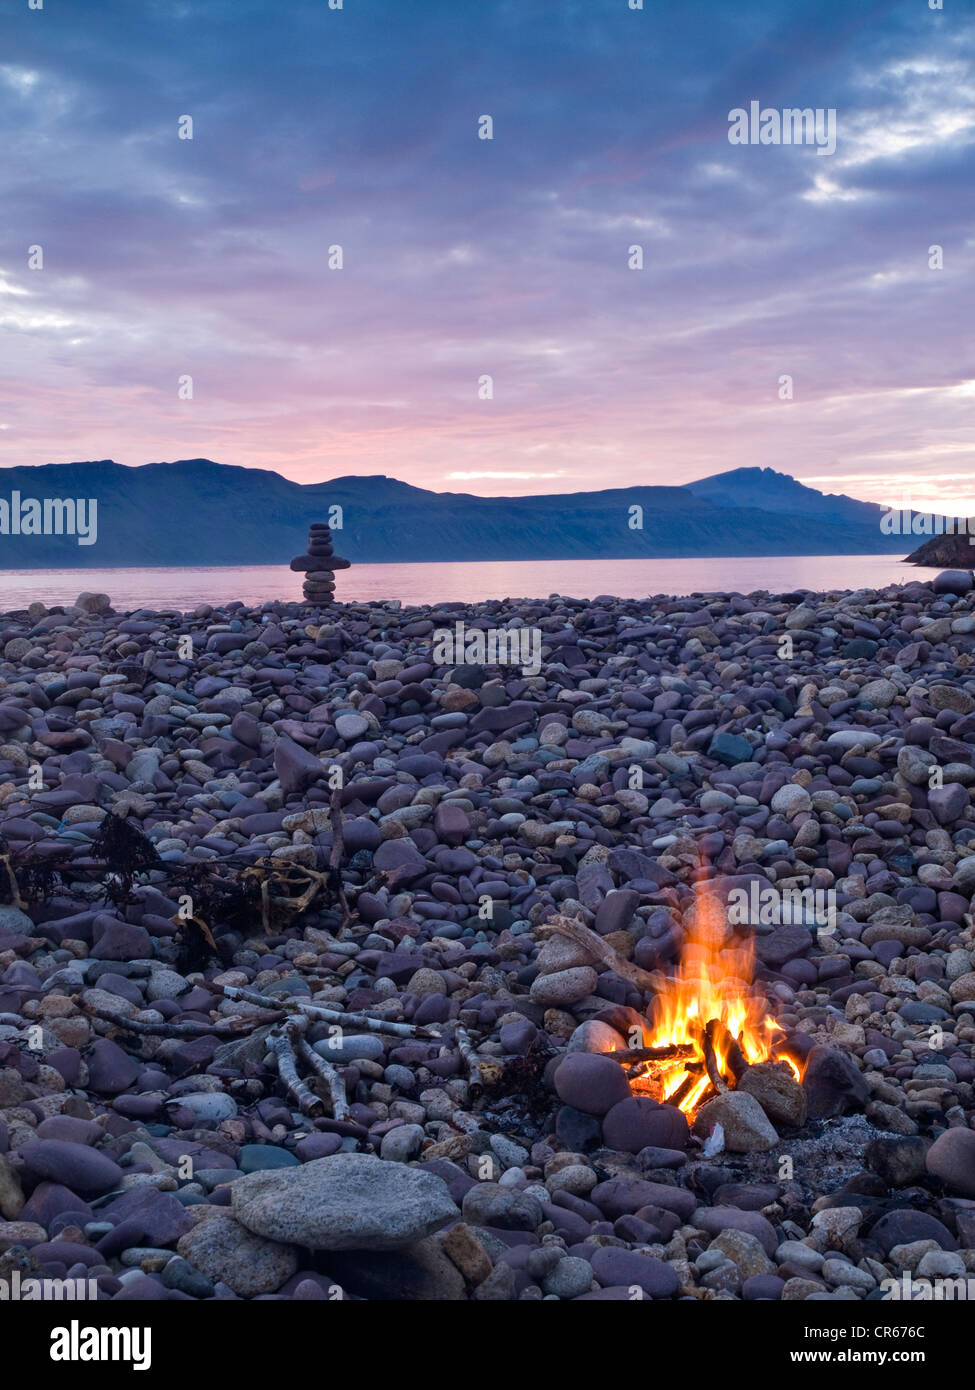 driftwood campfire on the beach, Raasay, Scotland - Stock Image